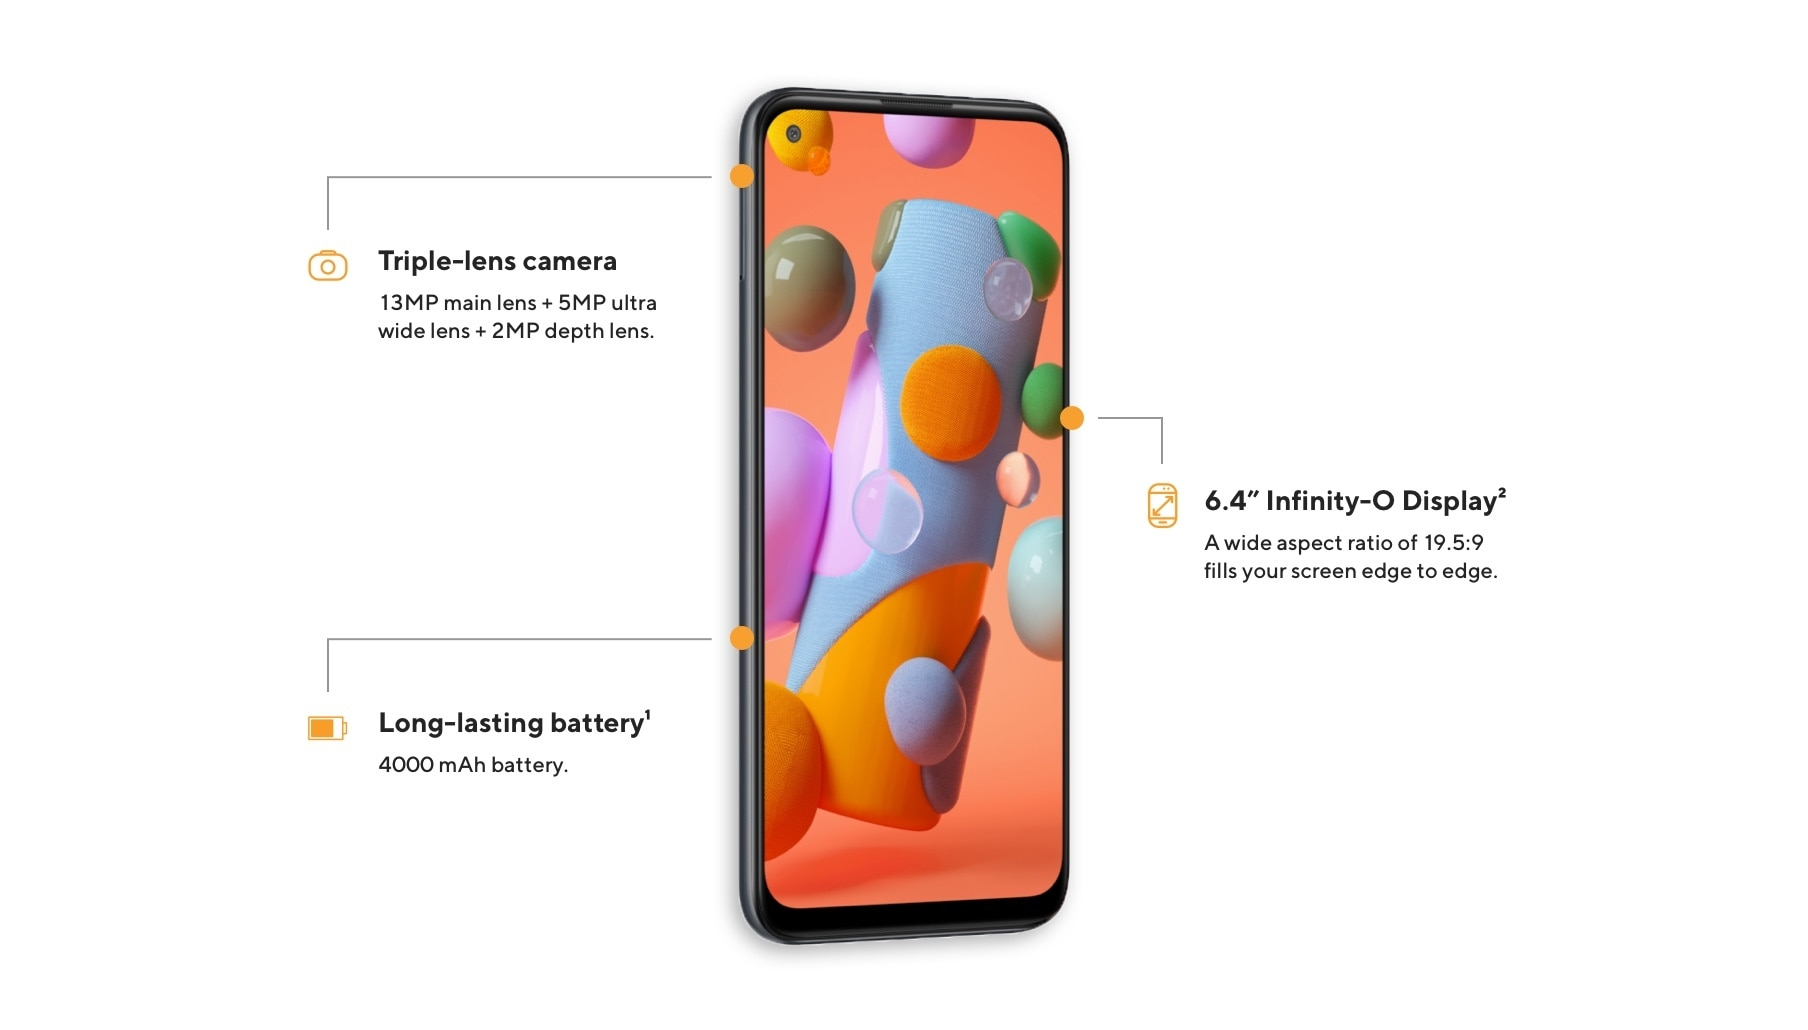 The Samsung Galaxy A11 offers a triple-lens camera with a 13MP main lens, 5MP ultra-wide lens, and 2MP depth lens, 6.4 inch Infinity O Display with a wide aspect ratio of 19.5 to 9 to fill the screen edge to edge, and long-lasting 4000 mAh battery.